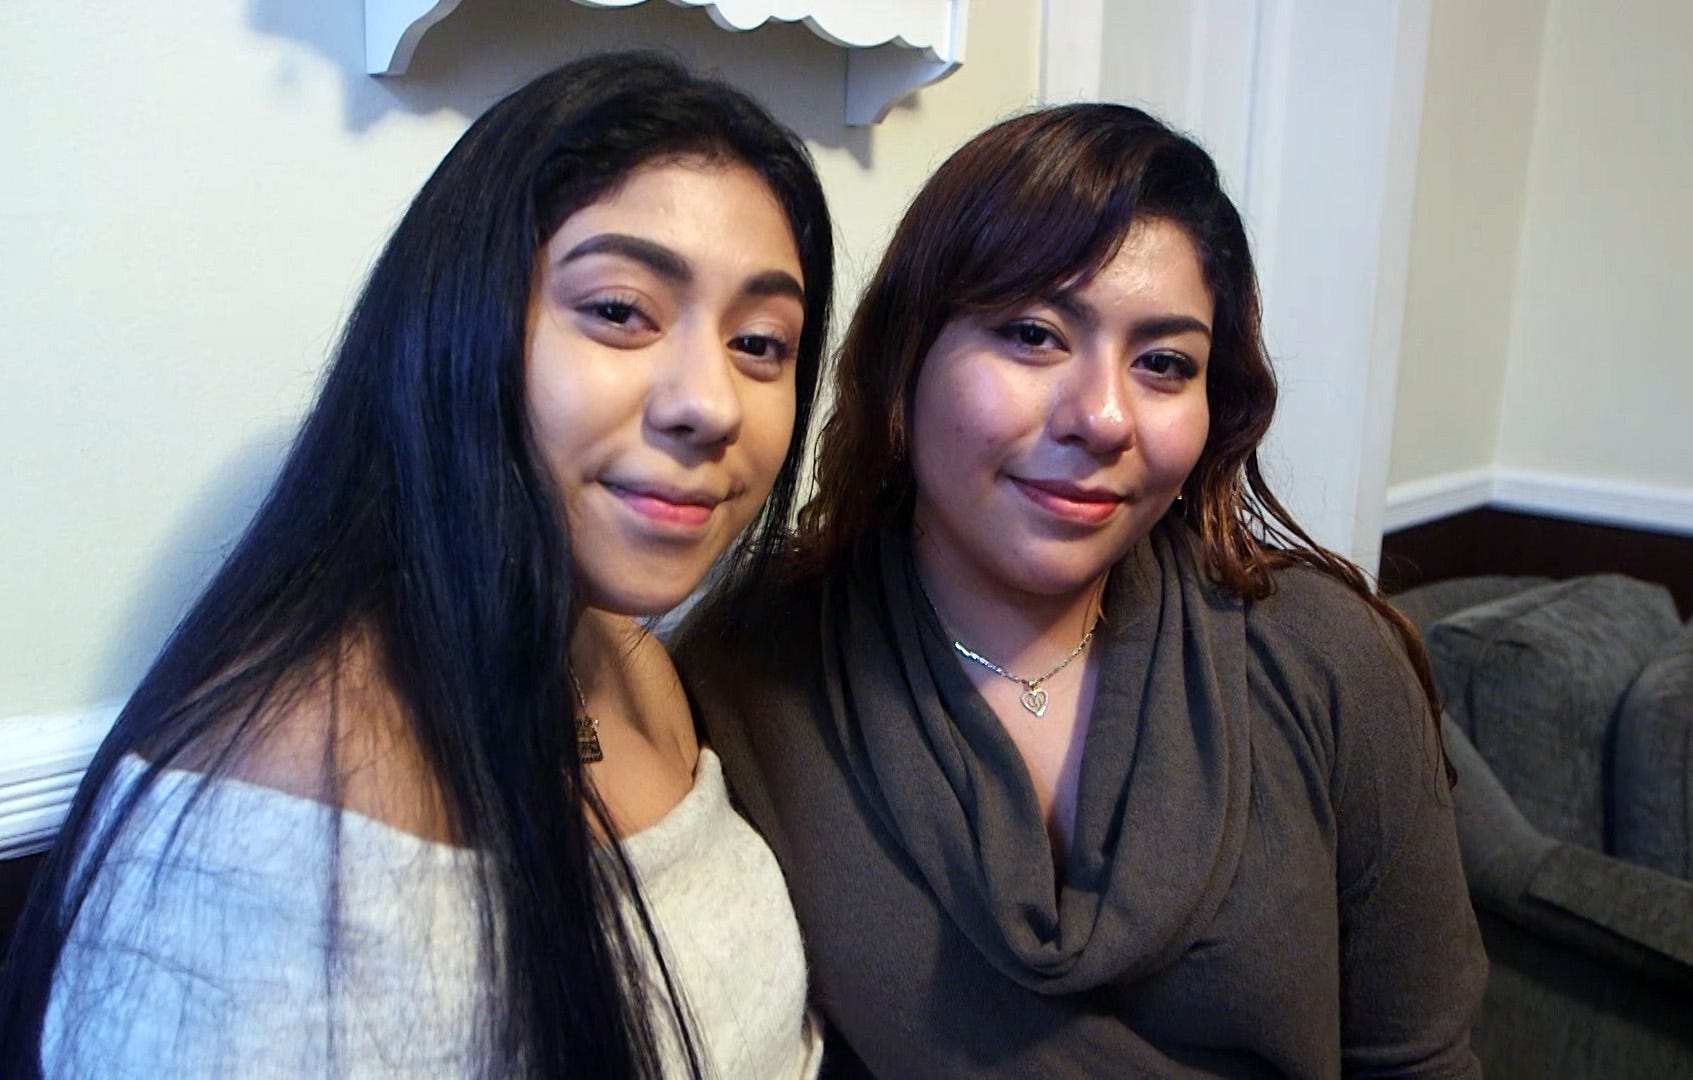 One sister has DACA status, the other doesn't. Their lives are worlds apart.